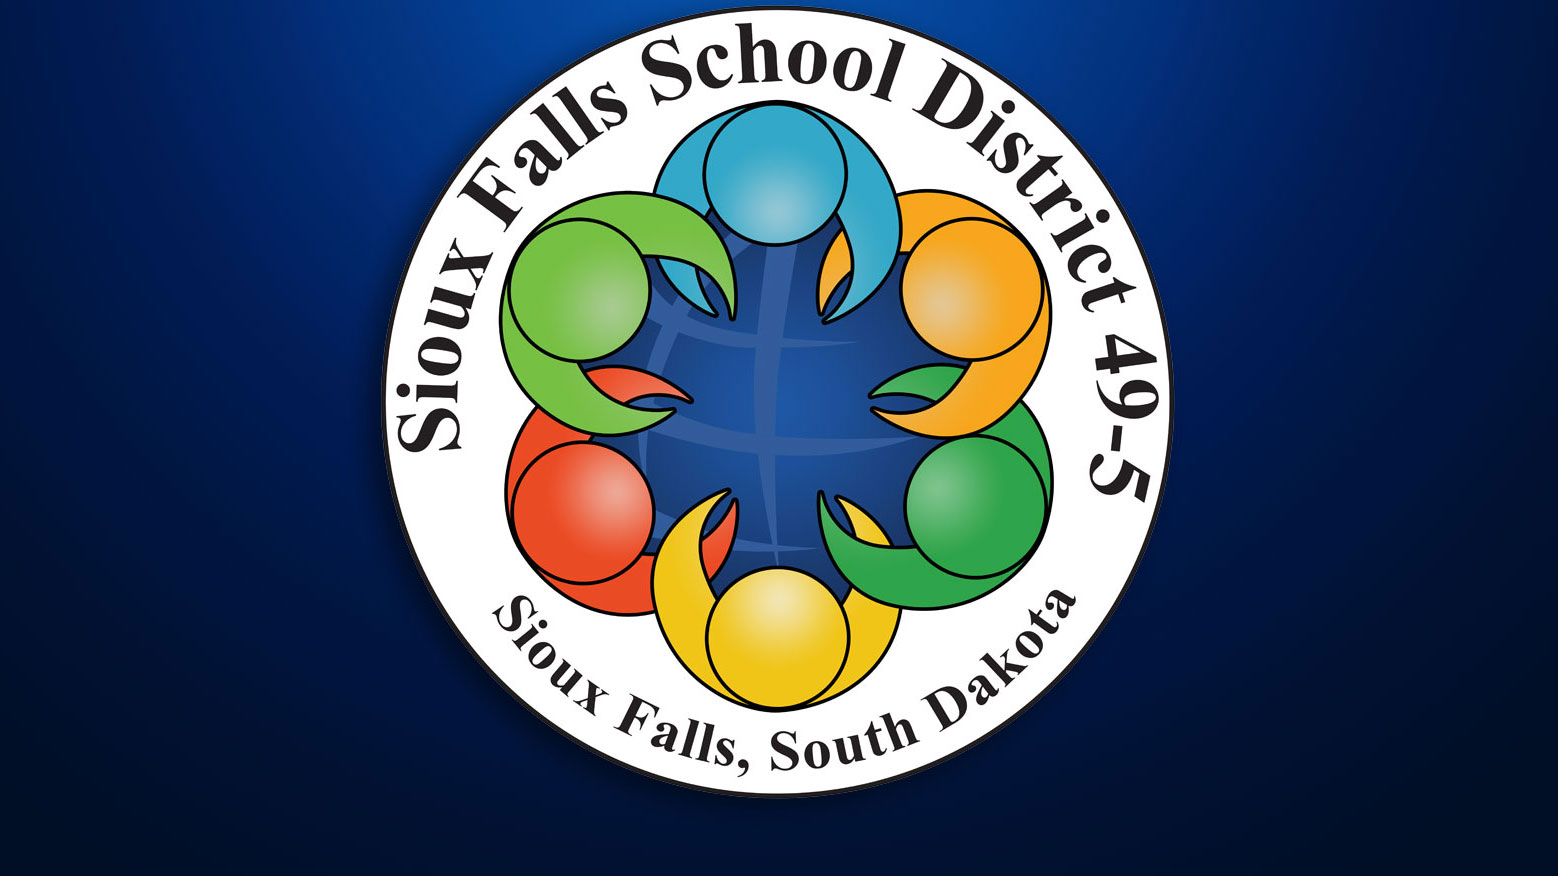 KELO-Sioux-Falls-School-District_1531166779784.jpg